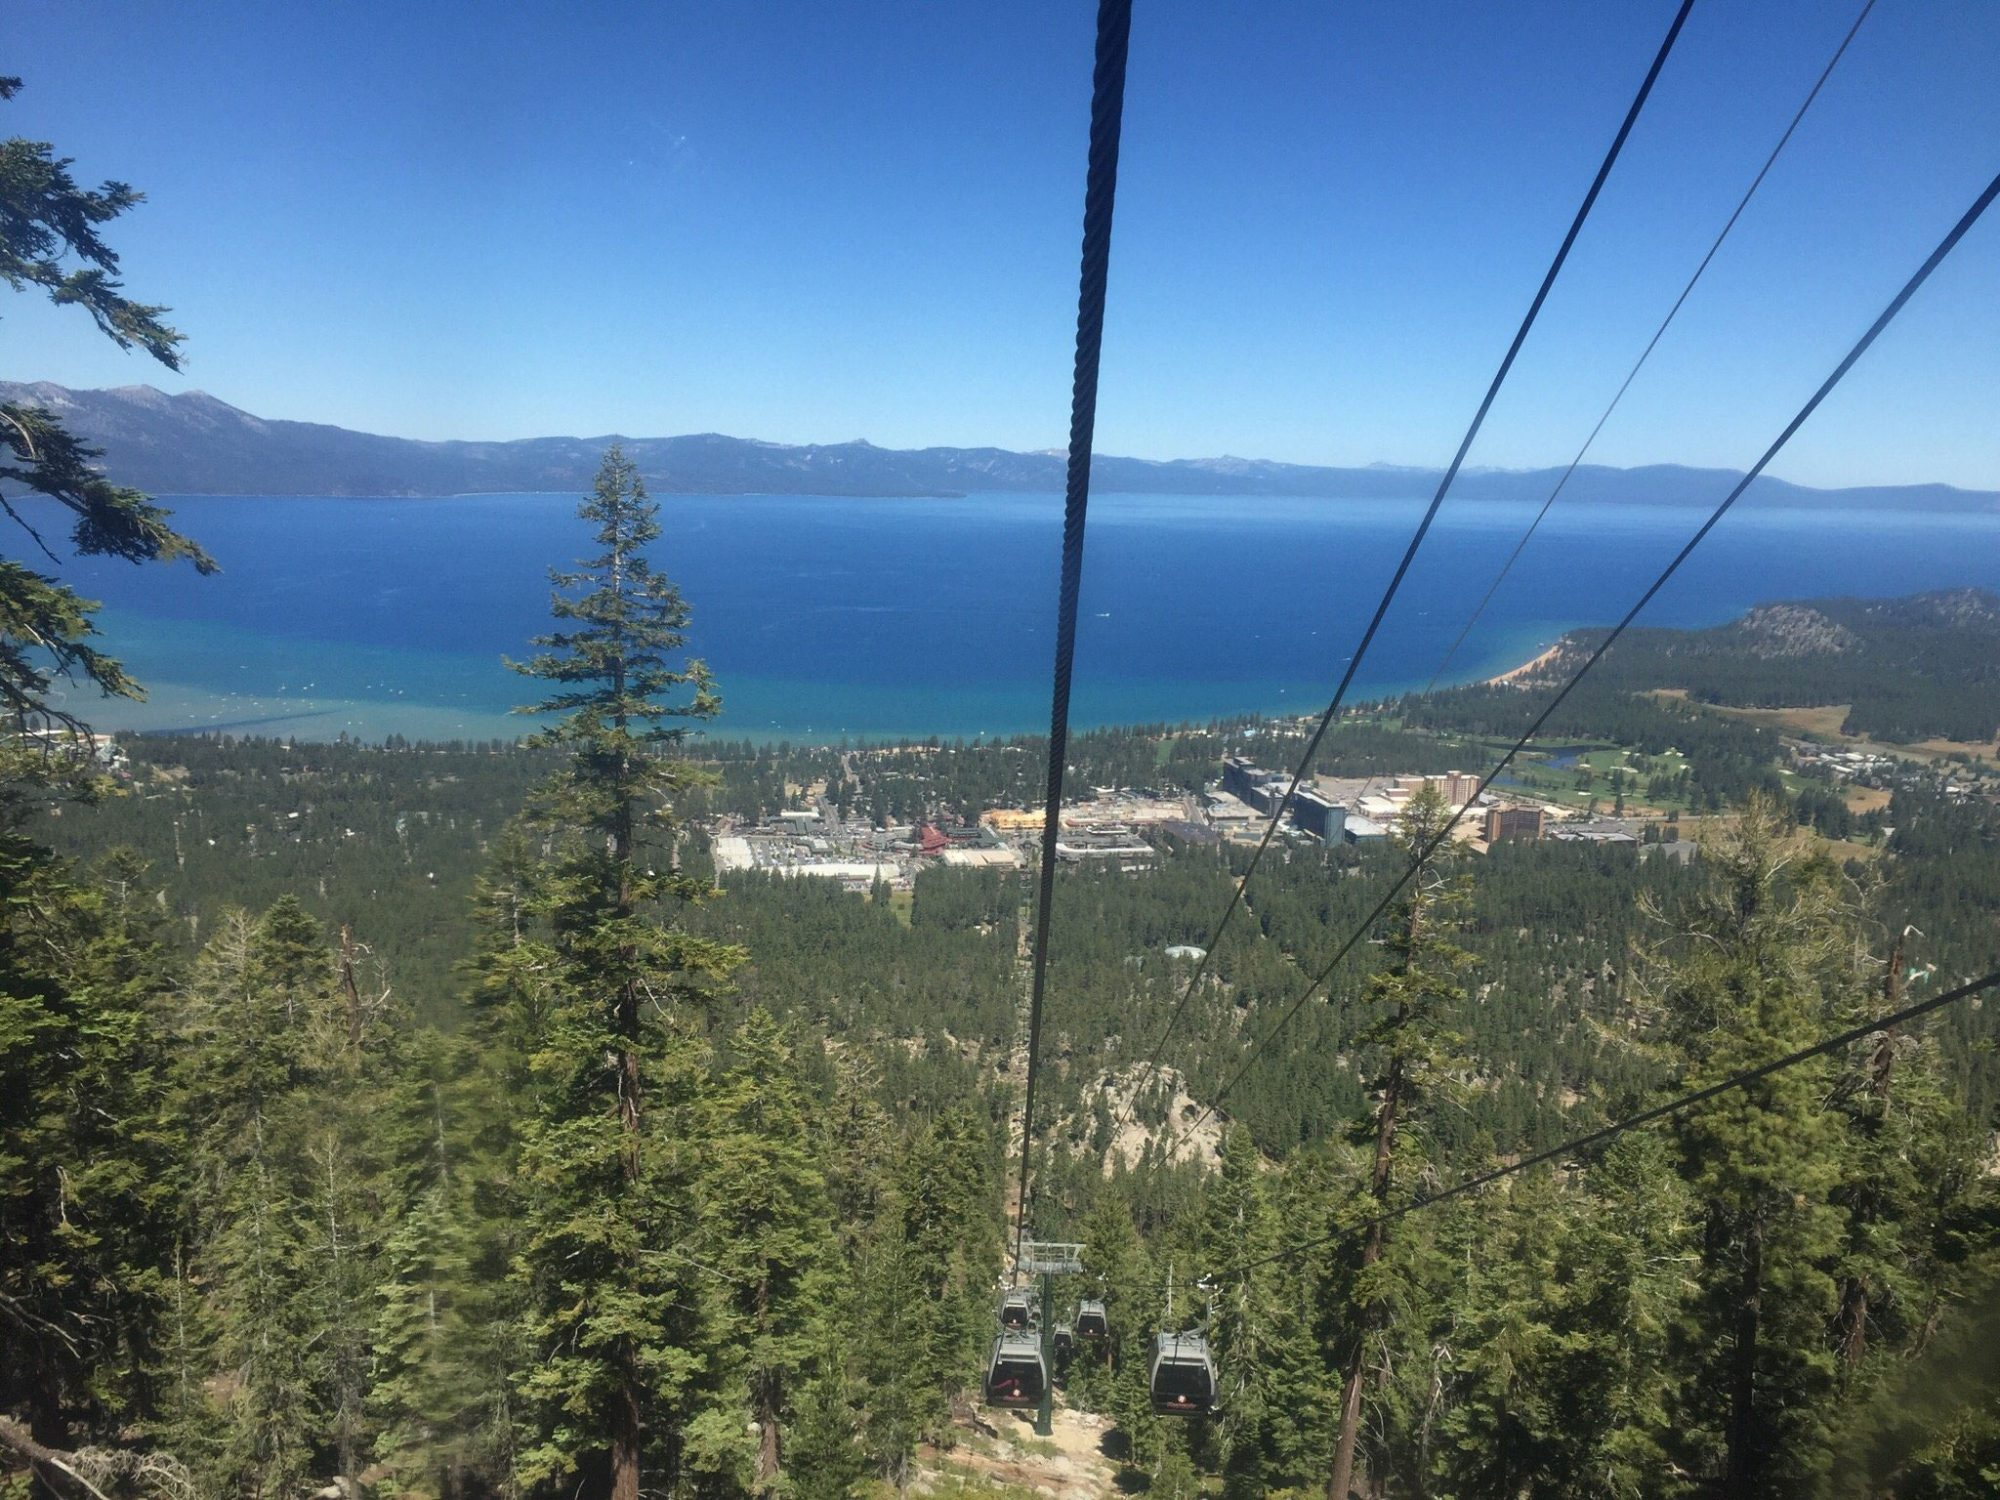 The Gondola at Heavenly in South Lake Tahoe, California